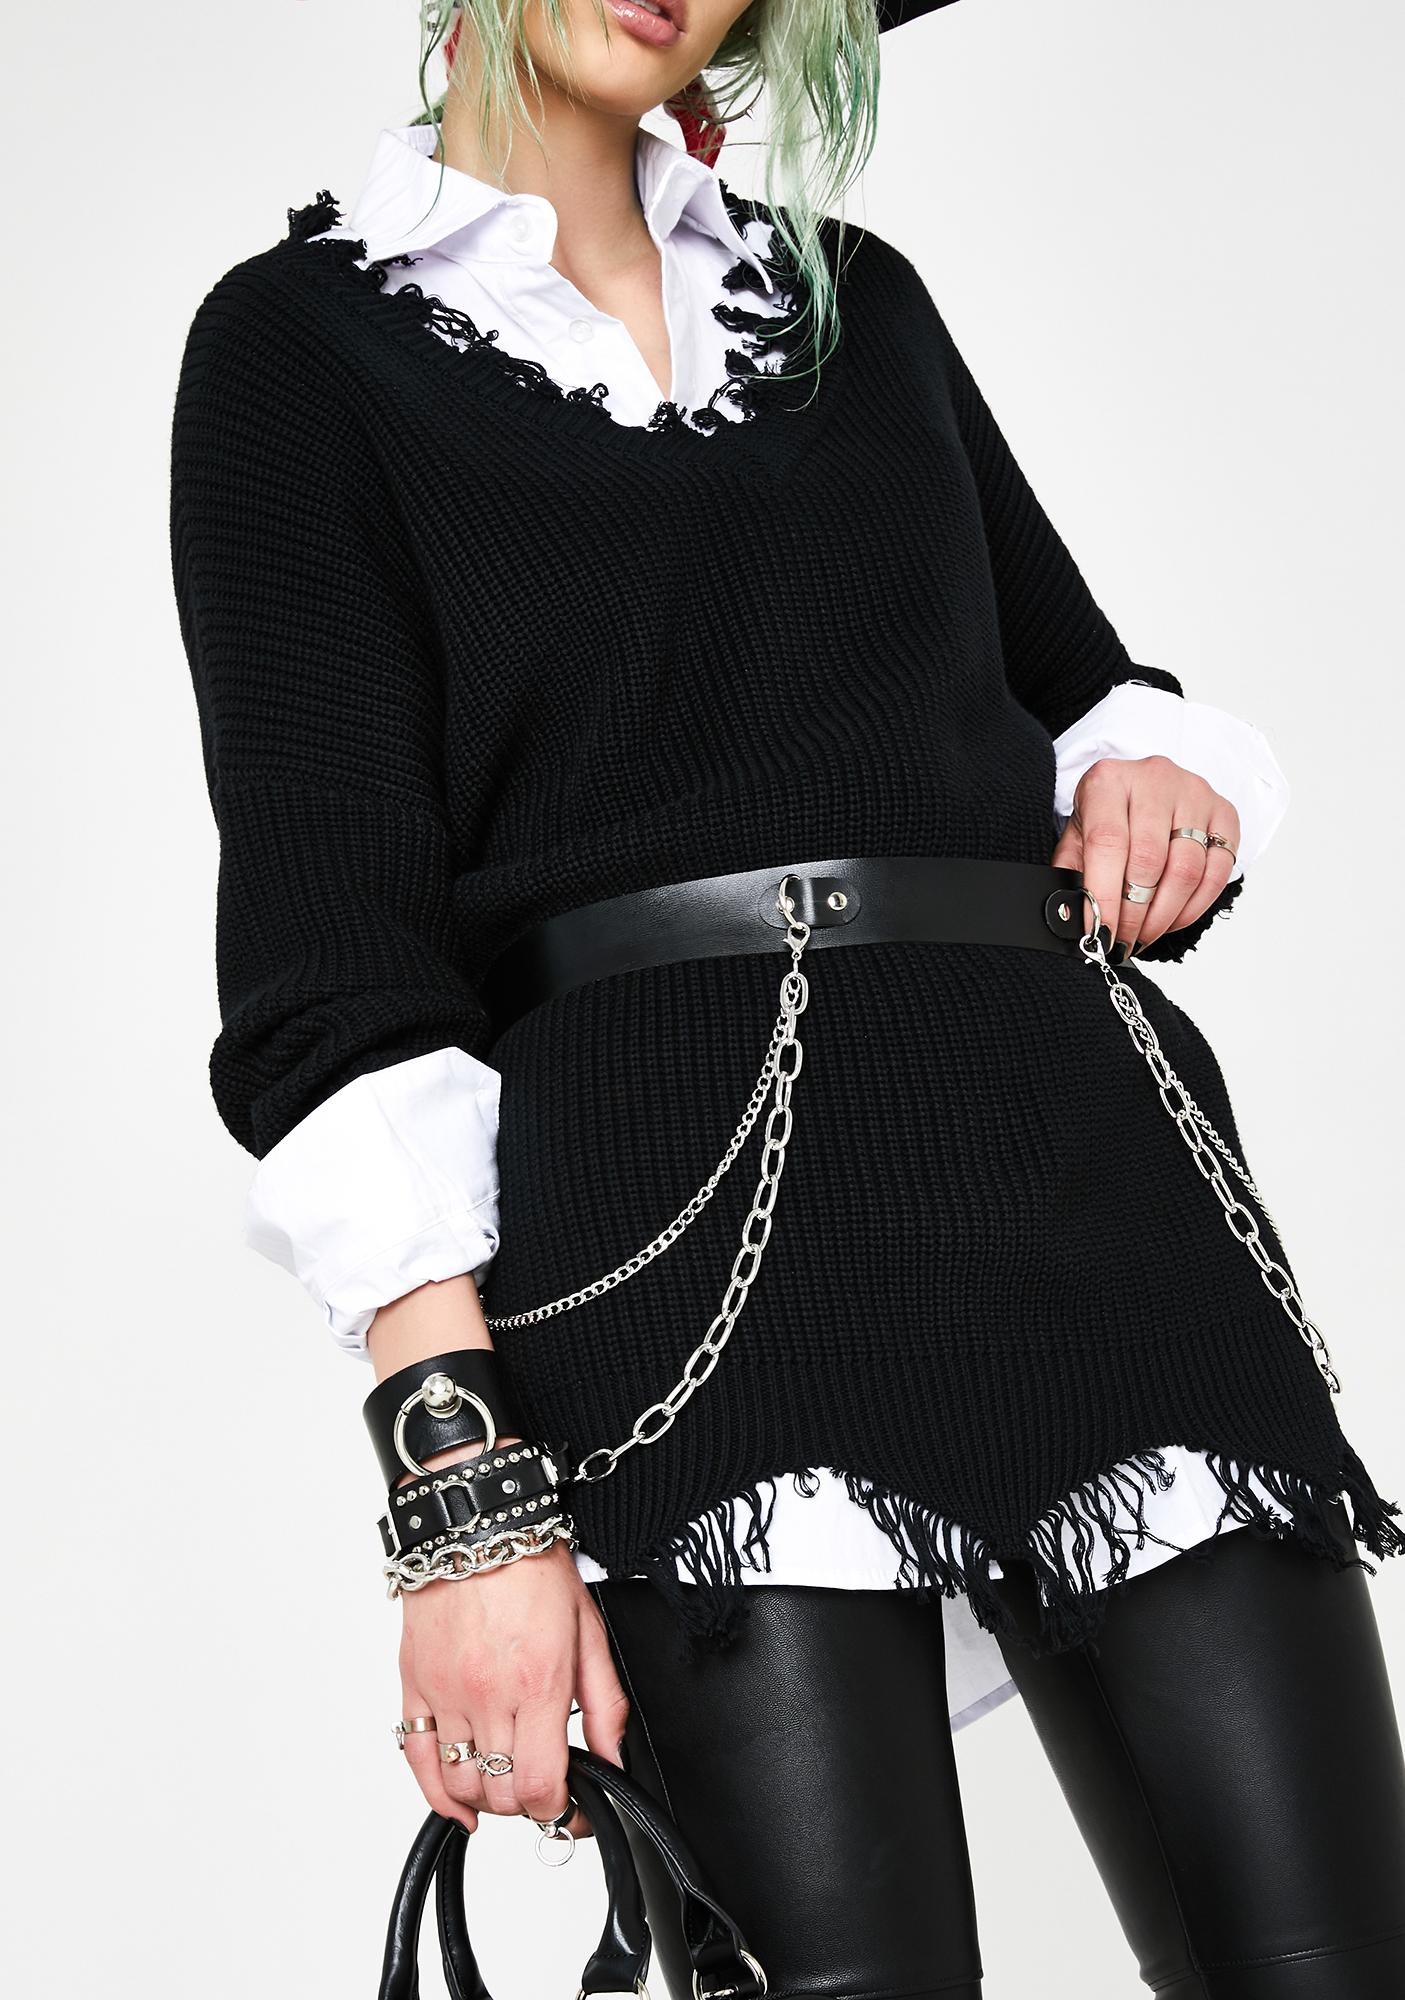 Get Rowdy Chained Belt